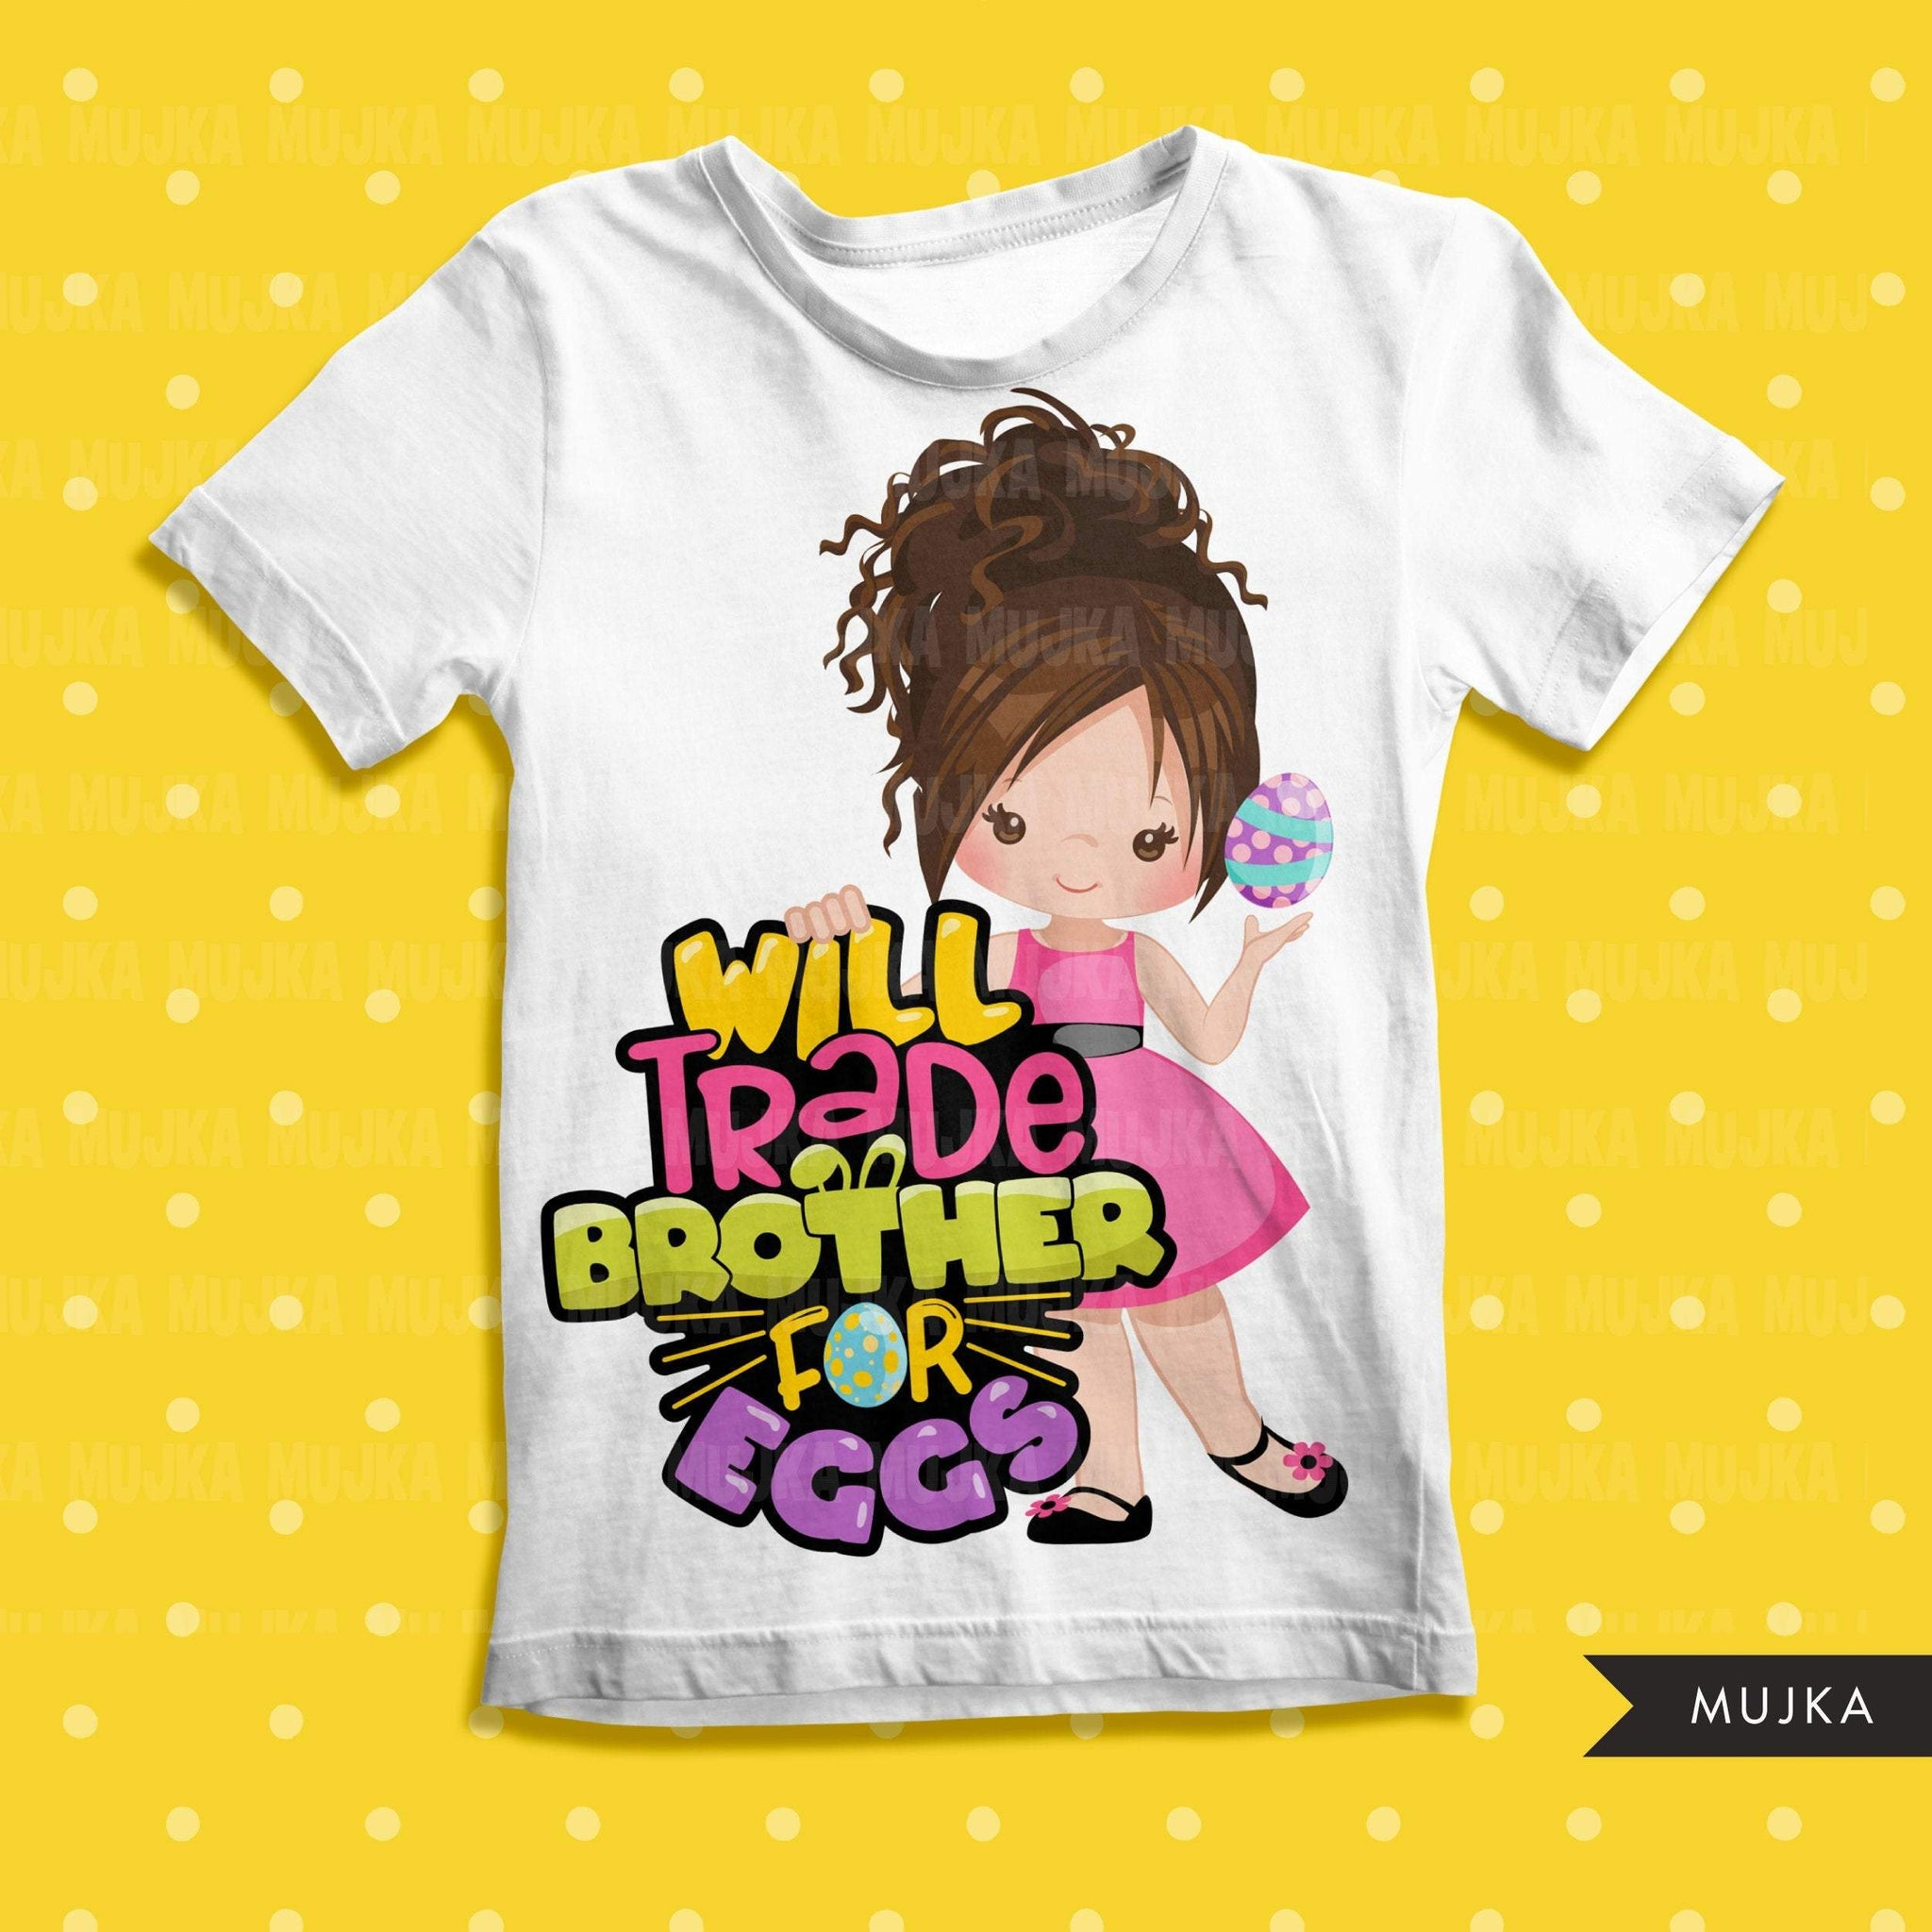 Easter PNG digital, Will trade brother for eggs Printable HTV sublimation image transfer clipart, t-shirt girl graphics